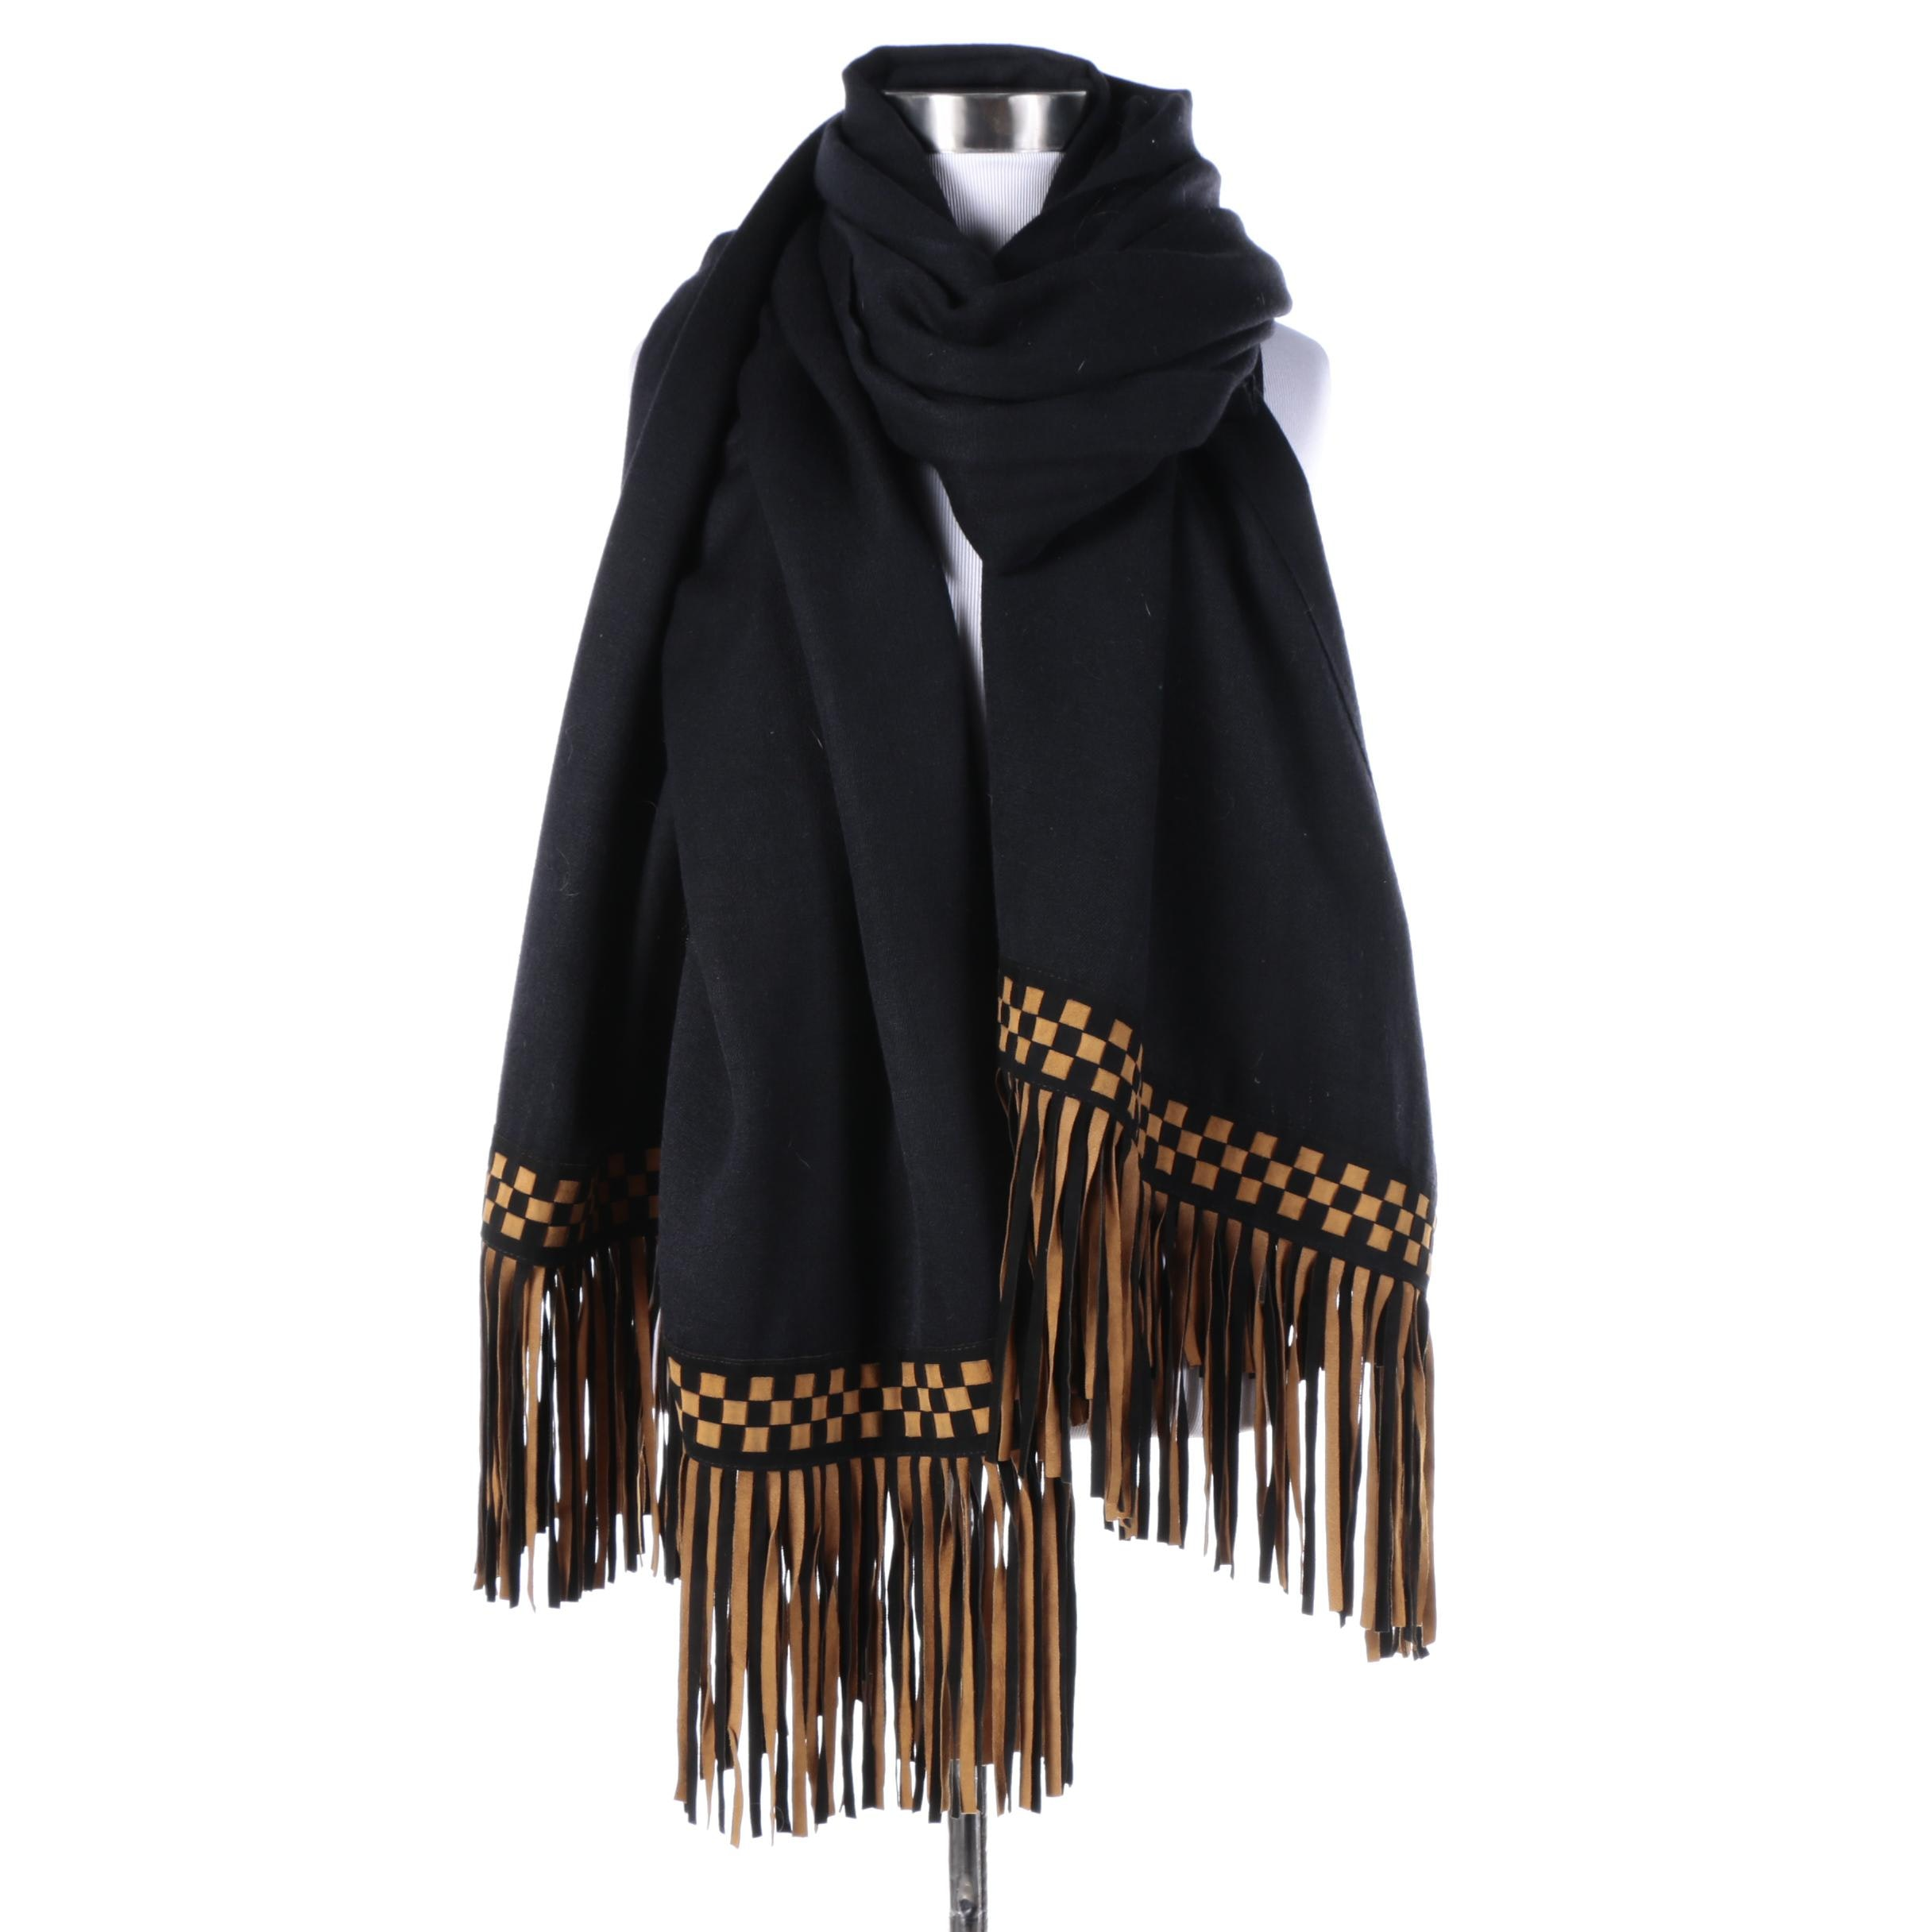 Flats Black Pashmina Silk Scarf with Woven Checkerboard Suede Fridge